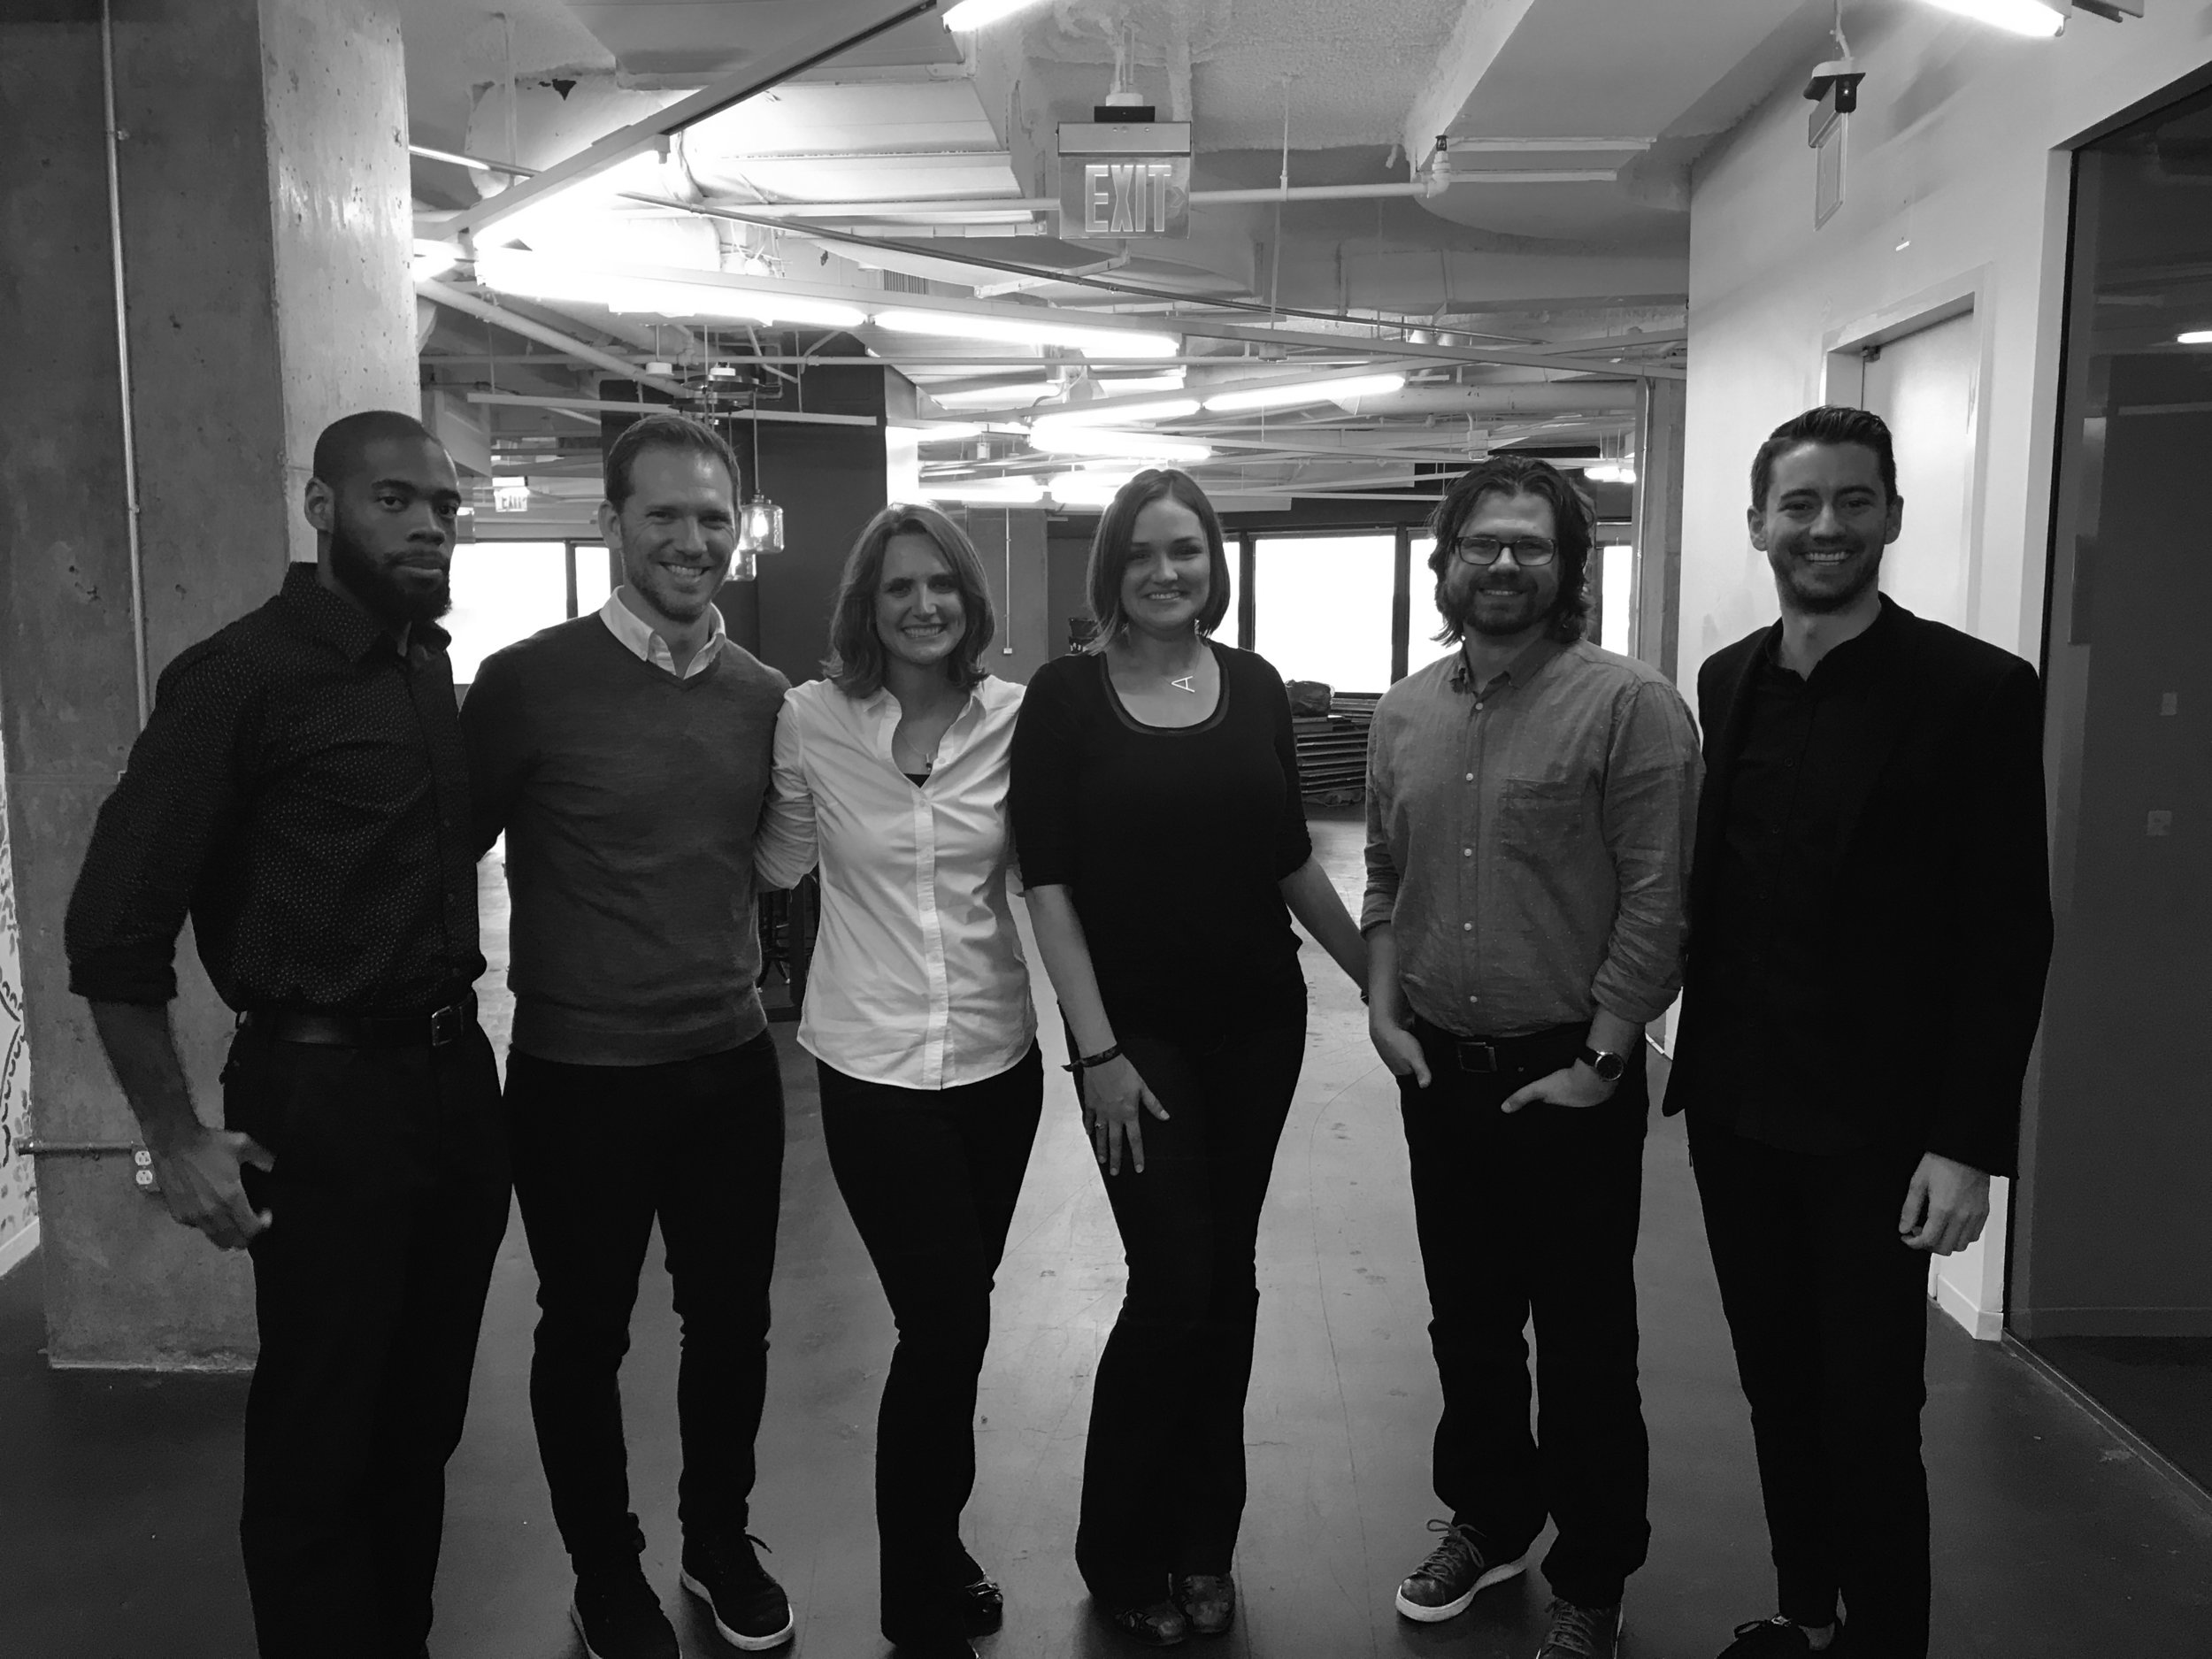 Founding JAMBers. Left to Right: Desmond Johnson, AIA NCARB NOMA; Christian N. Jordan, AIA; Katie Miller Johnson, AIA, LEED AP; Abigail R. Brown, AIA, LEED AP BD+C; Michael Anglin, AIA, LEED AP; Jared Edgar McKnight, Assoc AIA